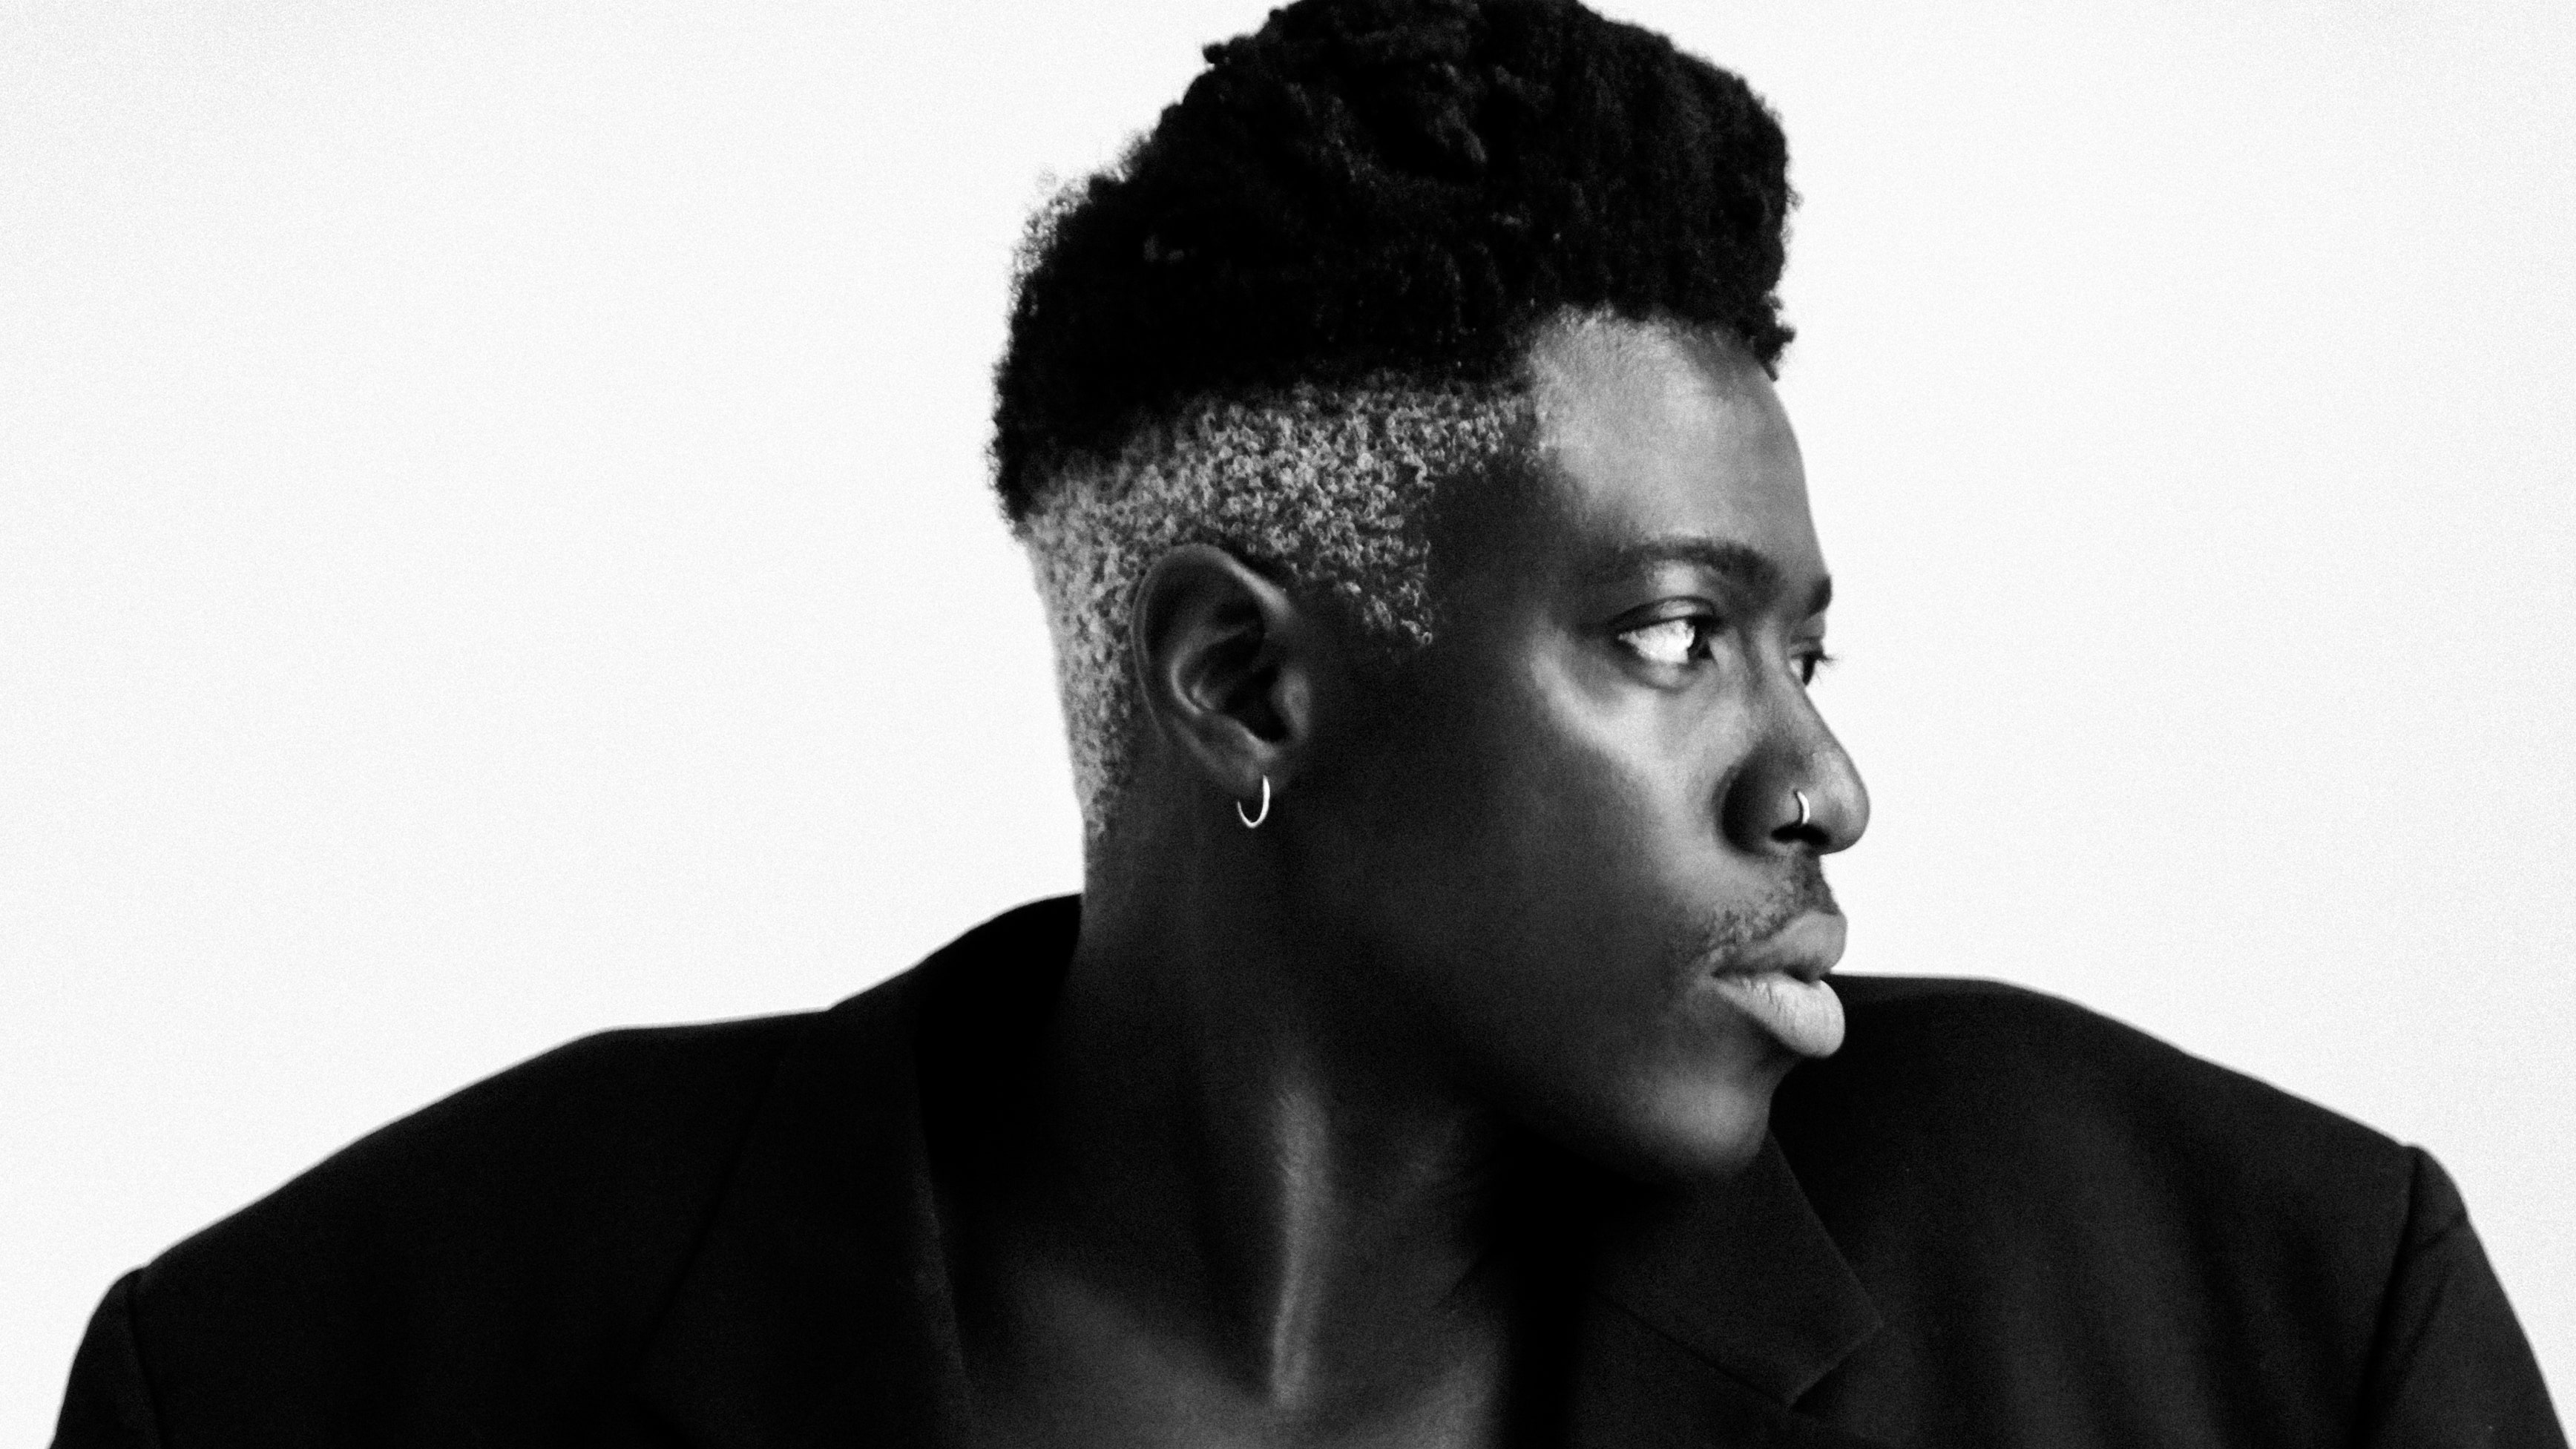 Moses Sumney, photo by Alexander Black. Source: pitchfork.com